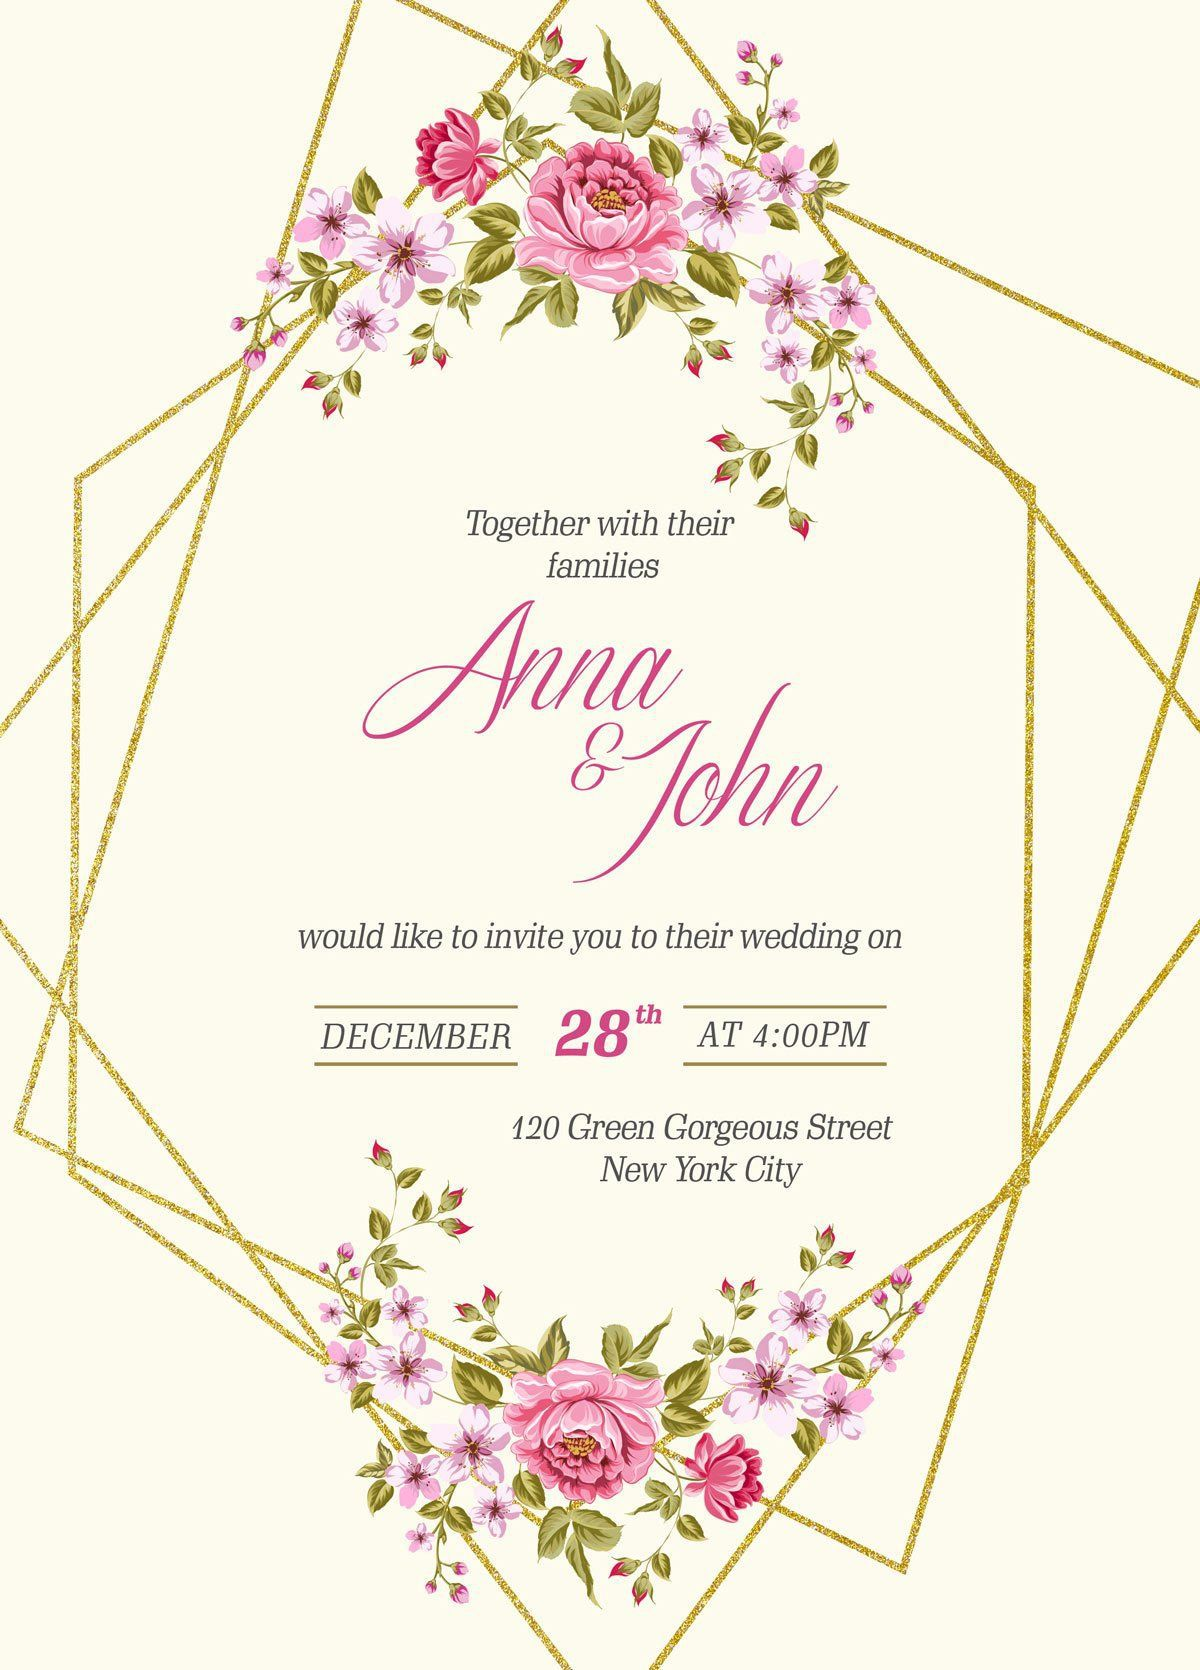 003 Magnificent Free Wedding Invitation Template Printable Picture  For Microsoft Word MacFull